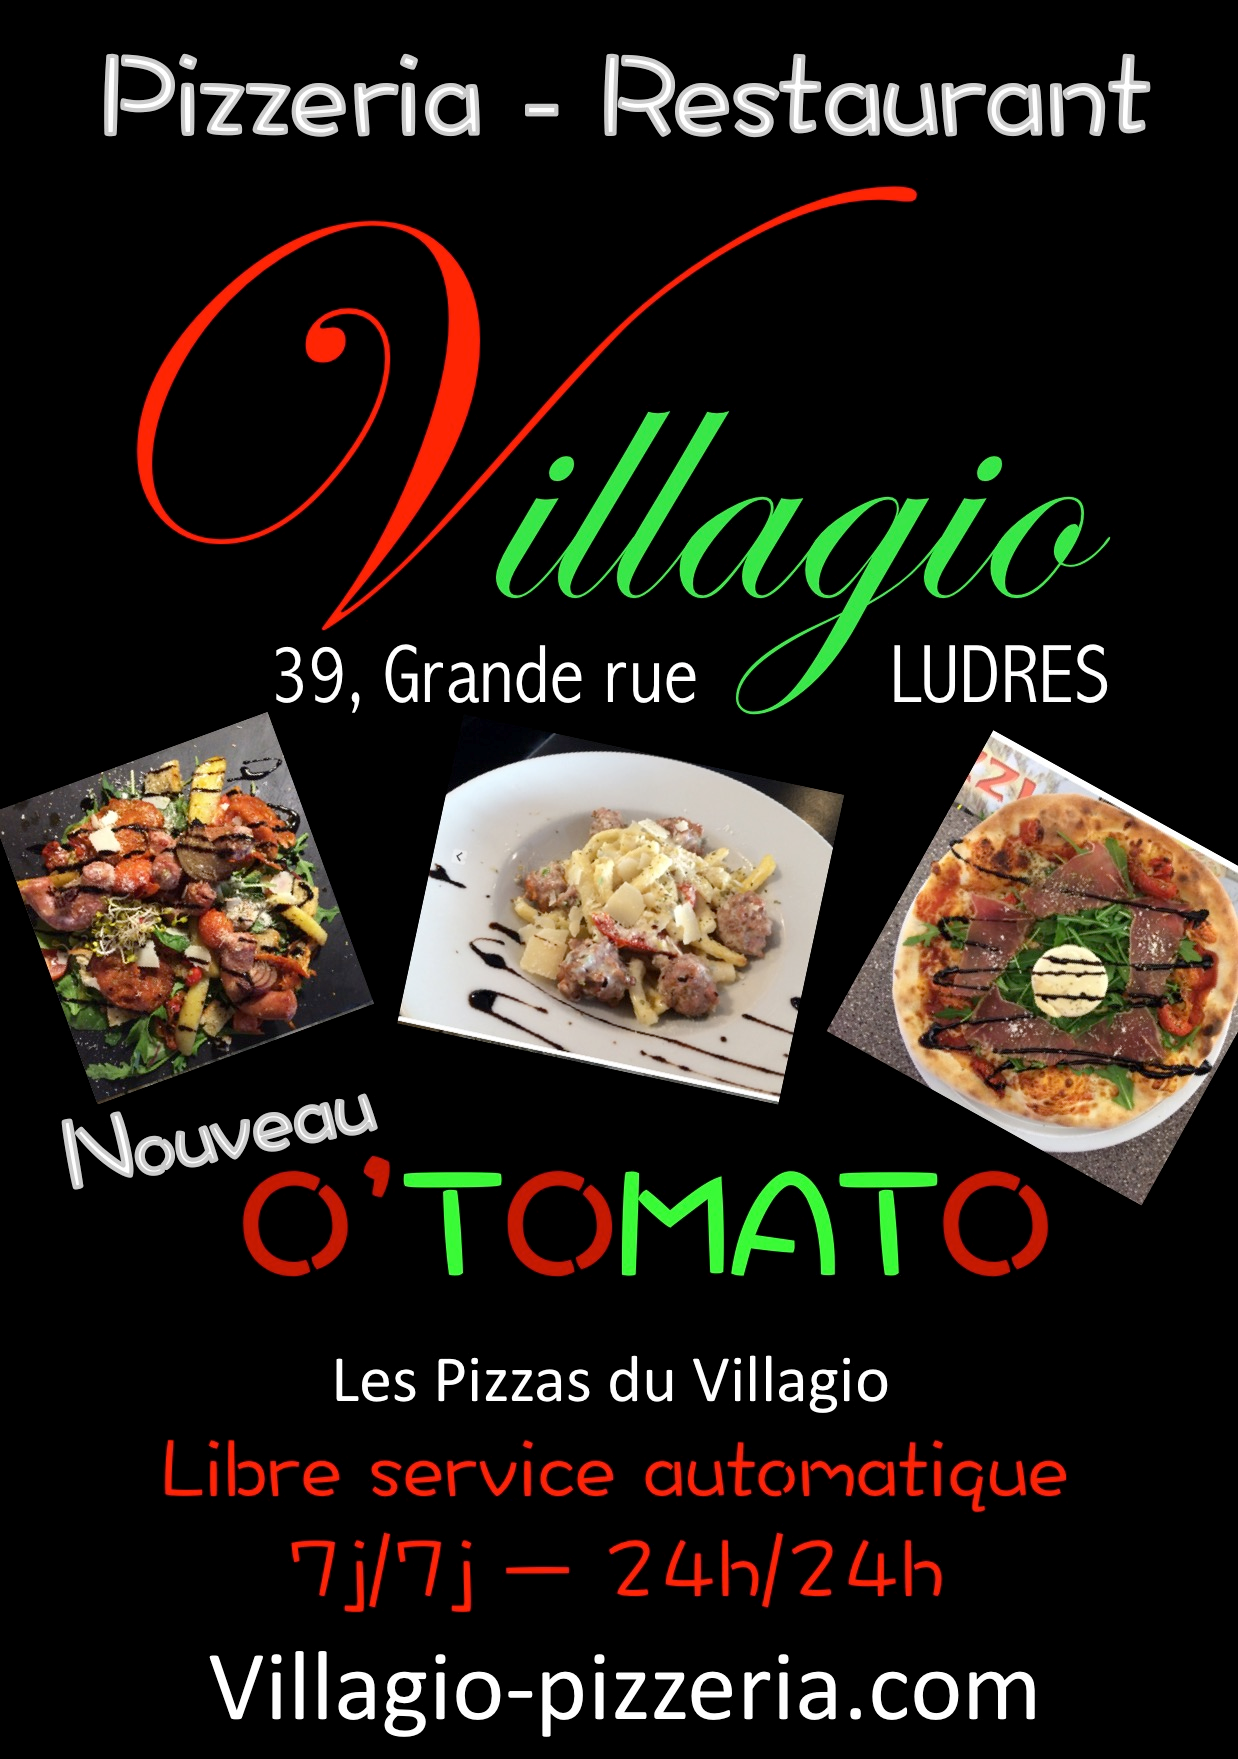 distributeur o 39 tomato dans la pizzeria le villagio ludres adial pizzadoor. Black Bedroom Furniture Sets. Home Design Ideas